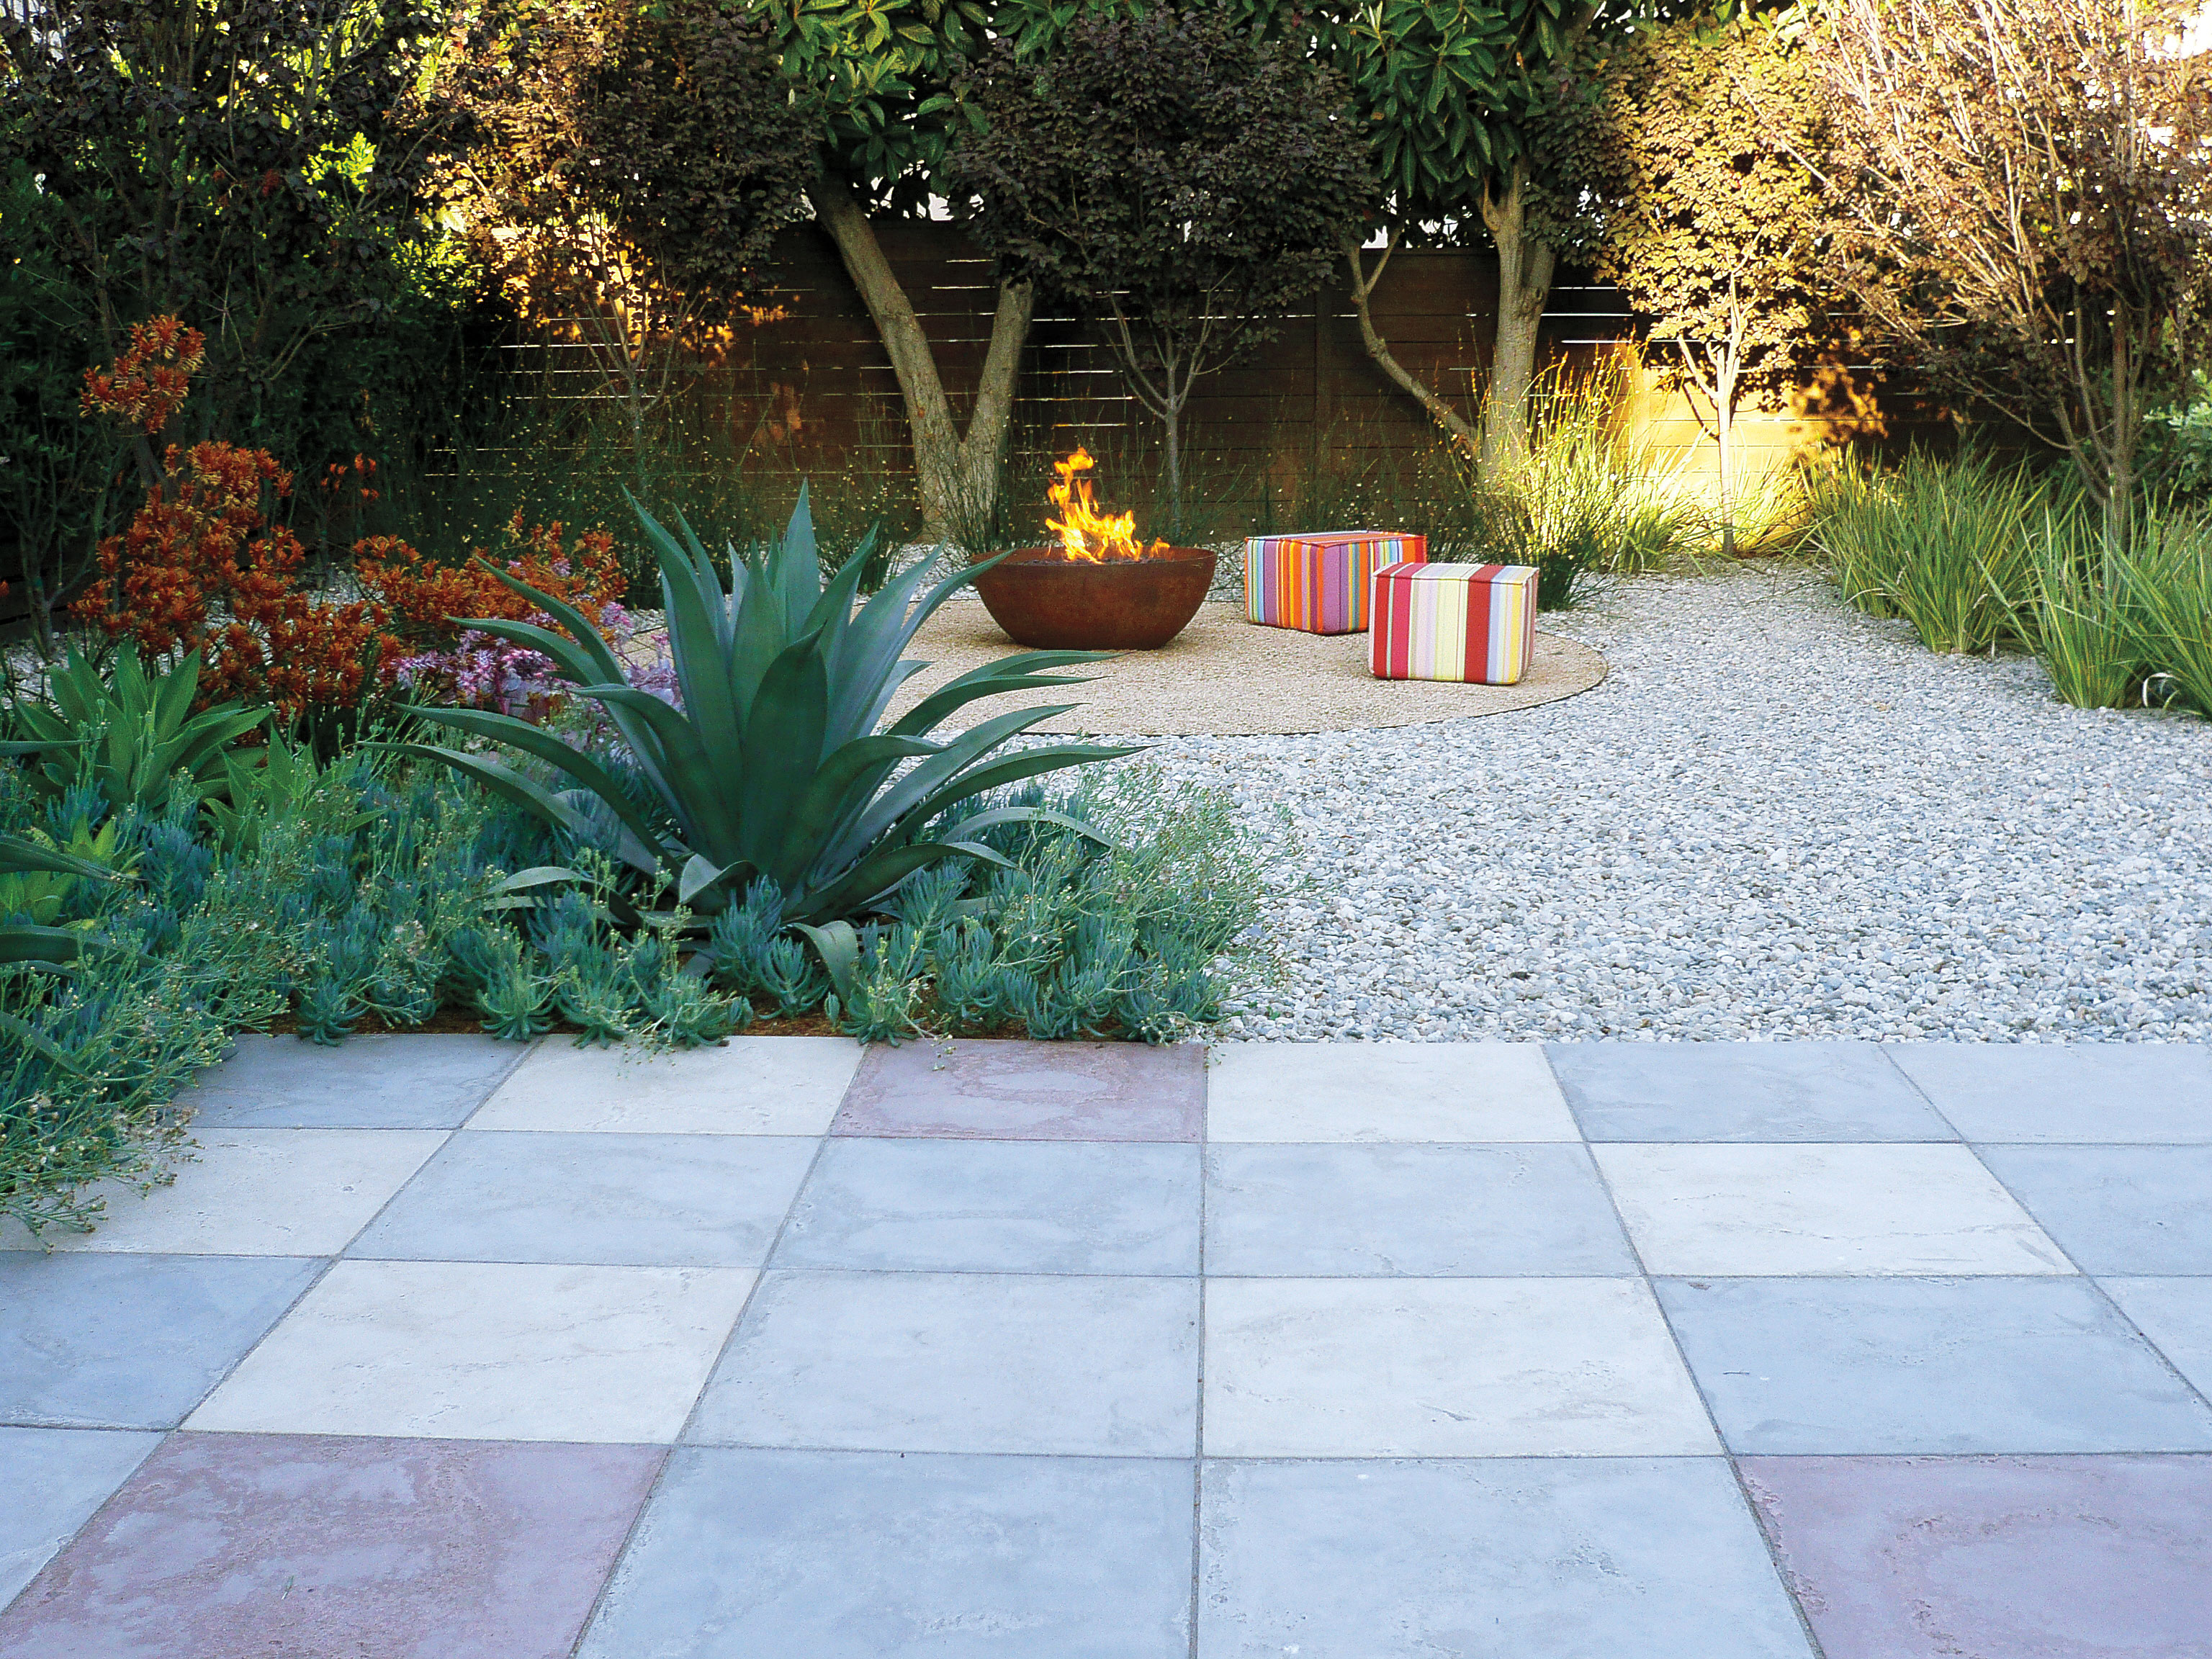 Why You Should Put Permeable Paving In Your Back Yard ... on Paving Ideas For Back Gardens id=47738